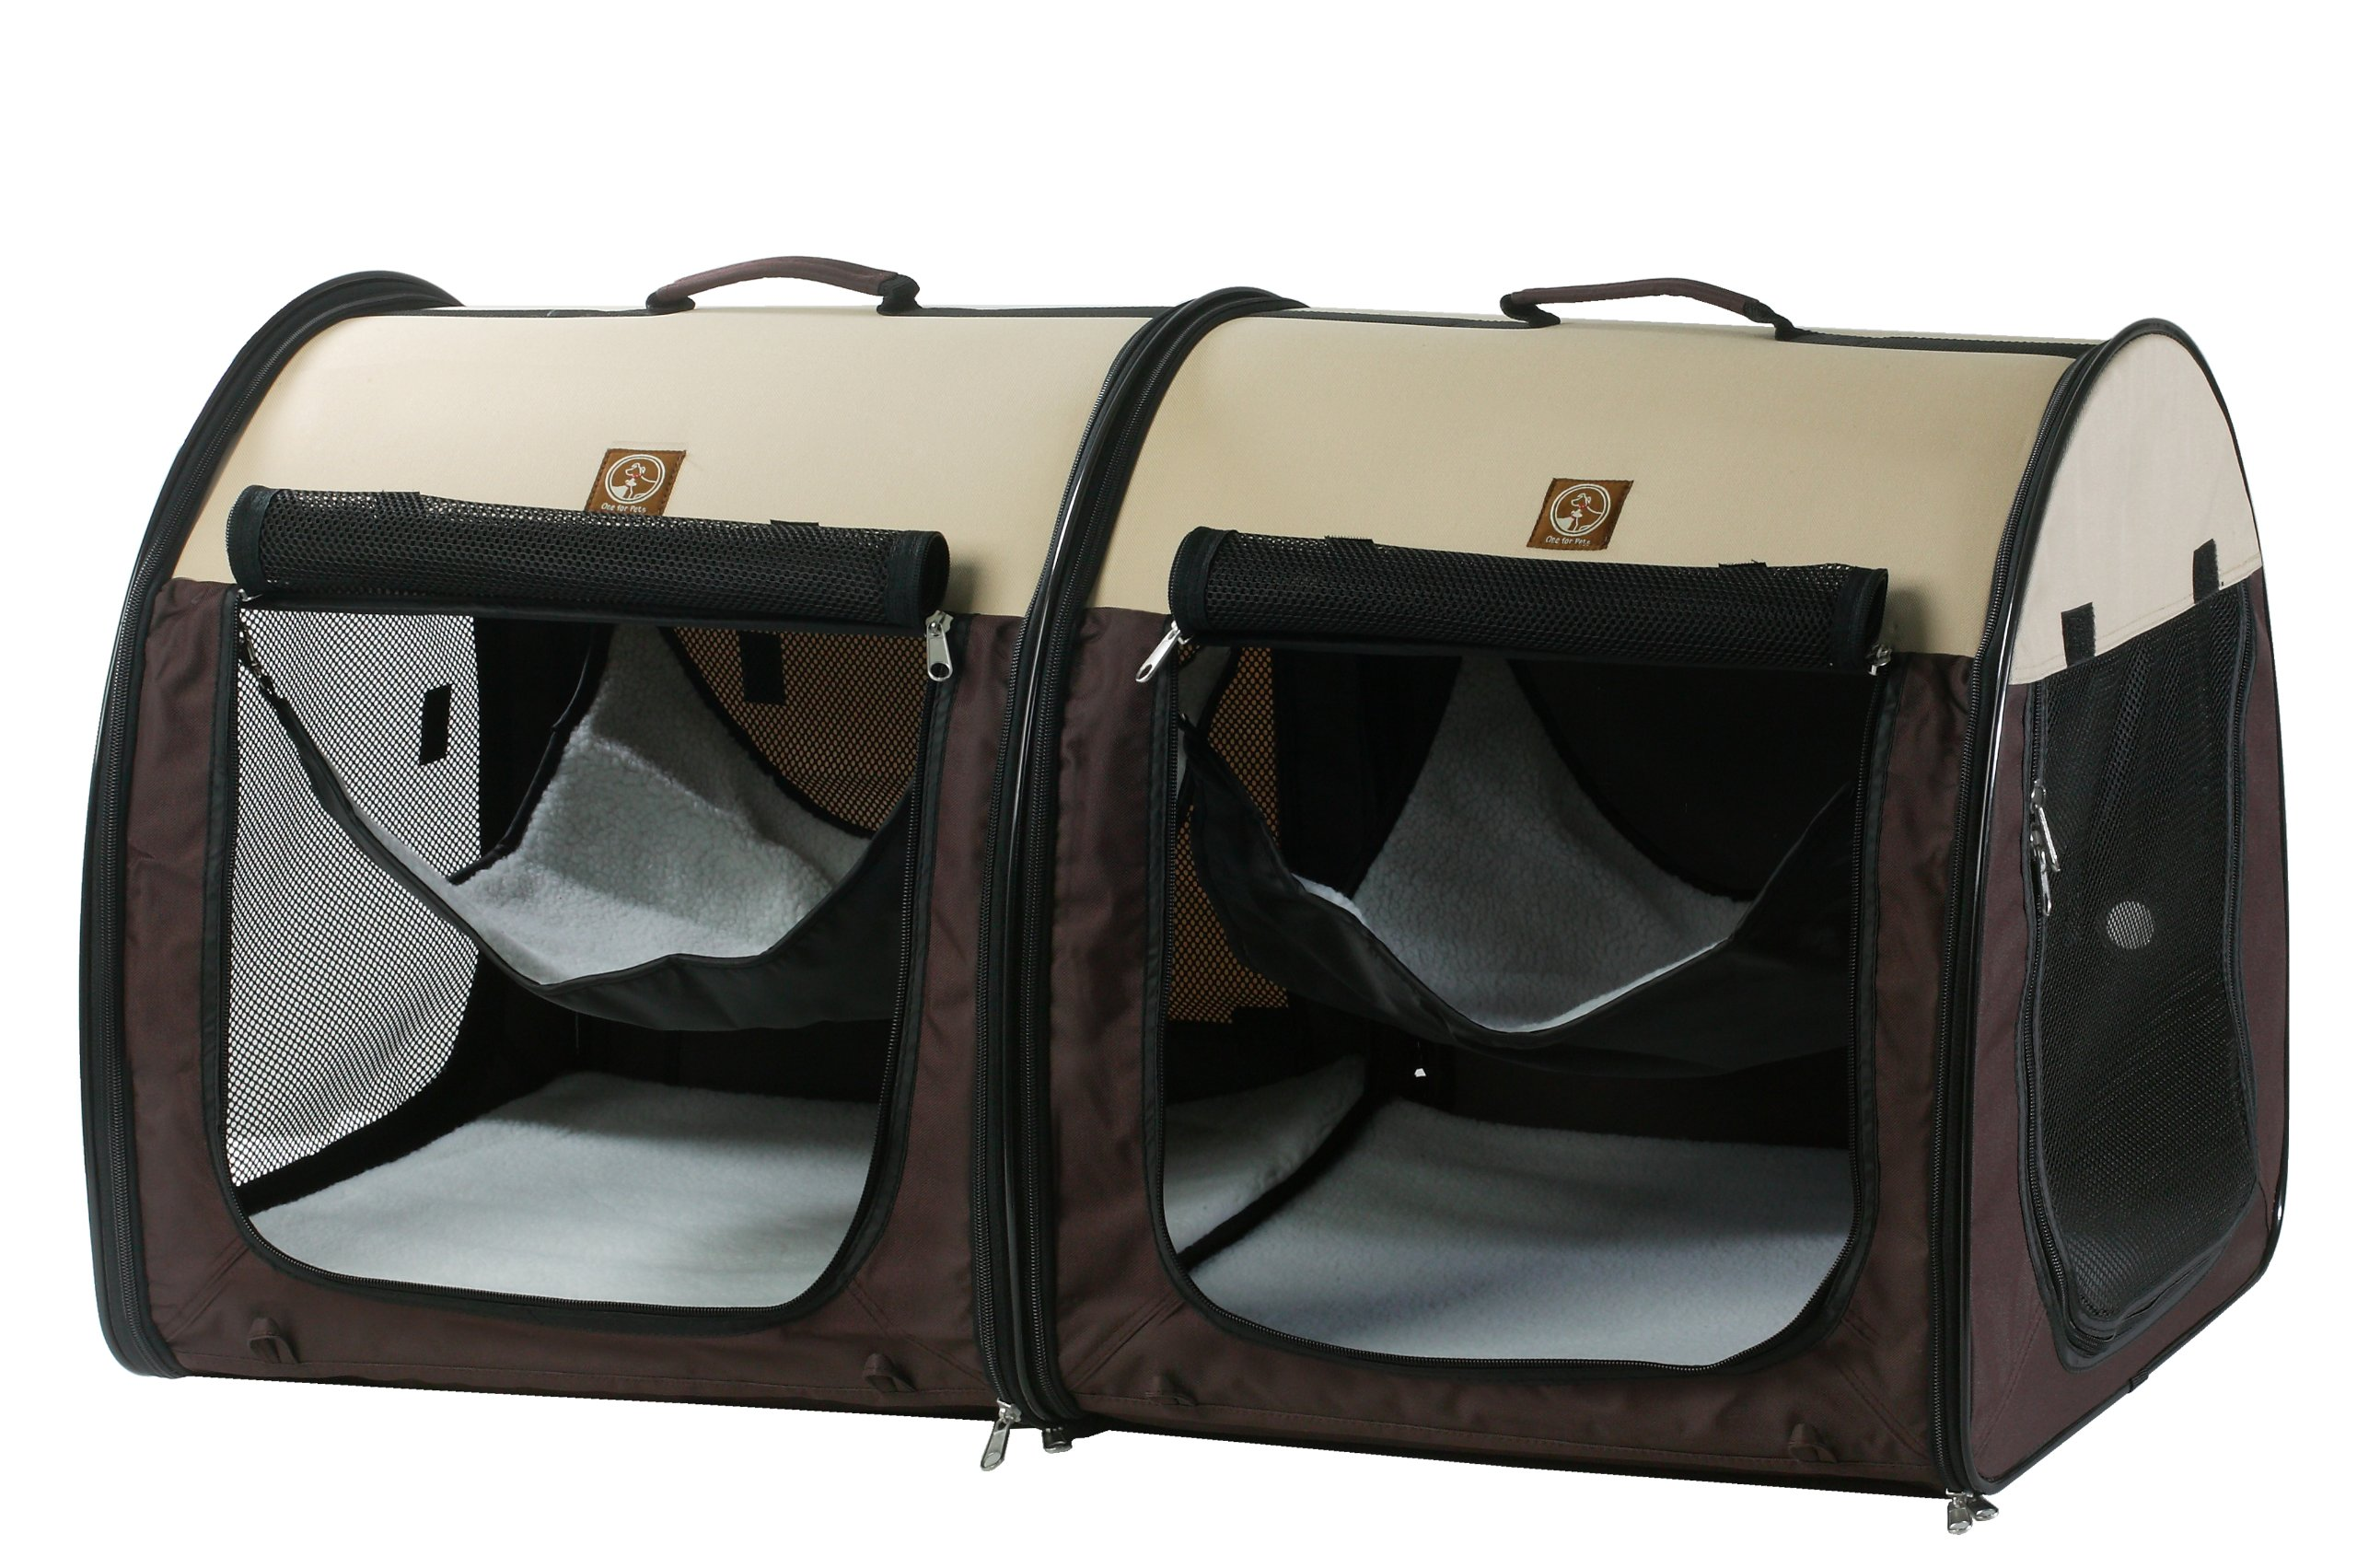 One for Pets Fabric Portable Dog Cat Kennel Shelter, Double, Cream/Brown 20''x20''x39'' by One for Pets (Image #1)